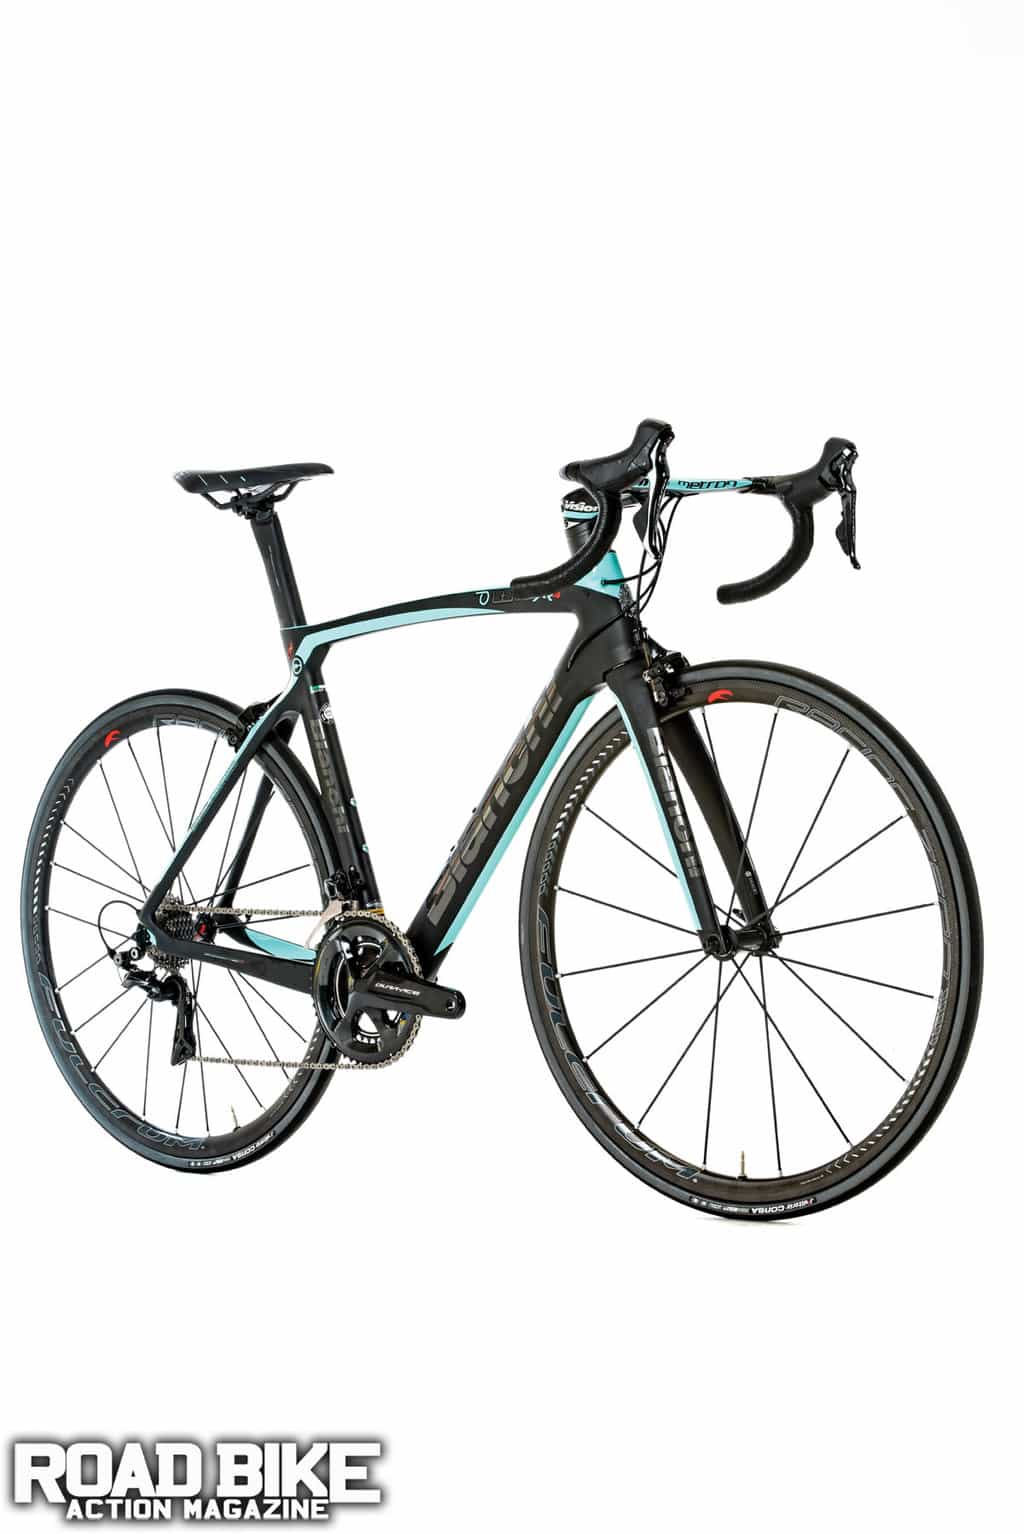 bianchi oltre xr4 with etap and enve